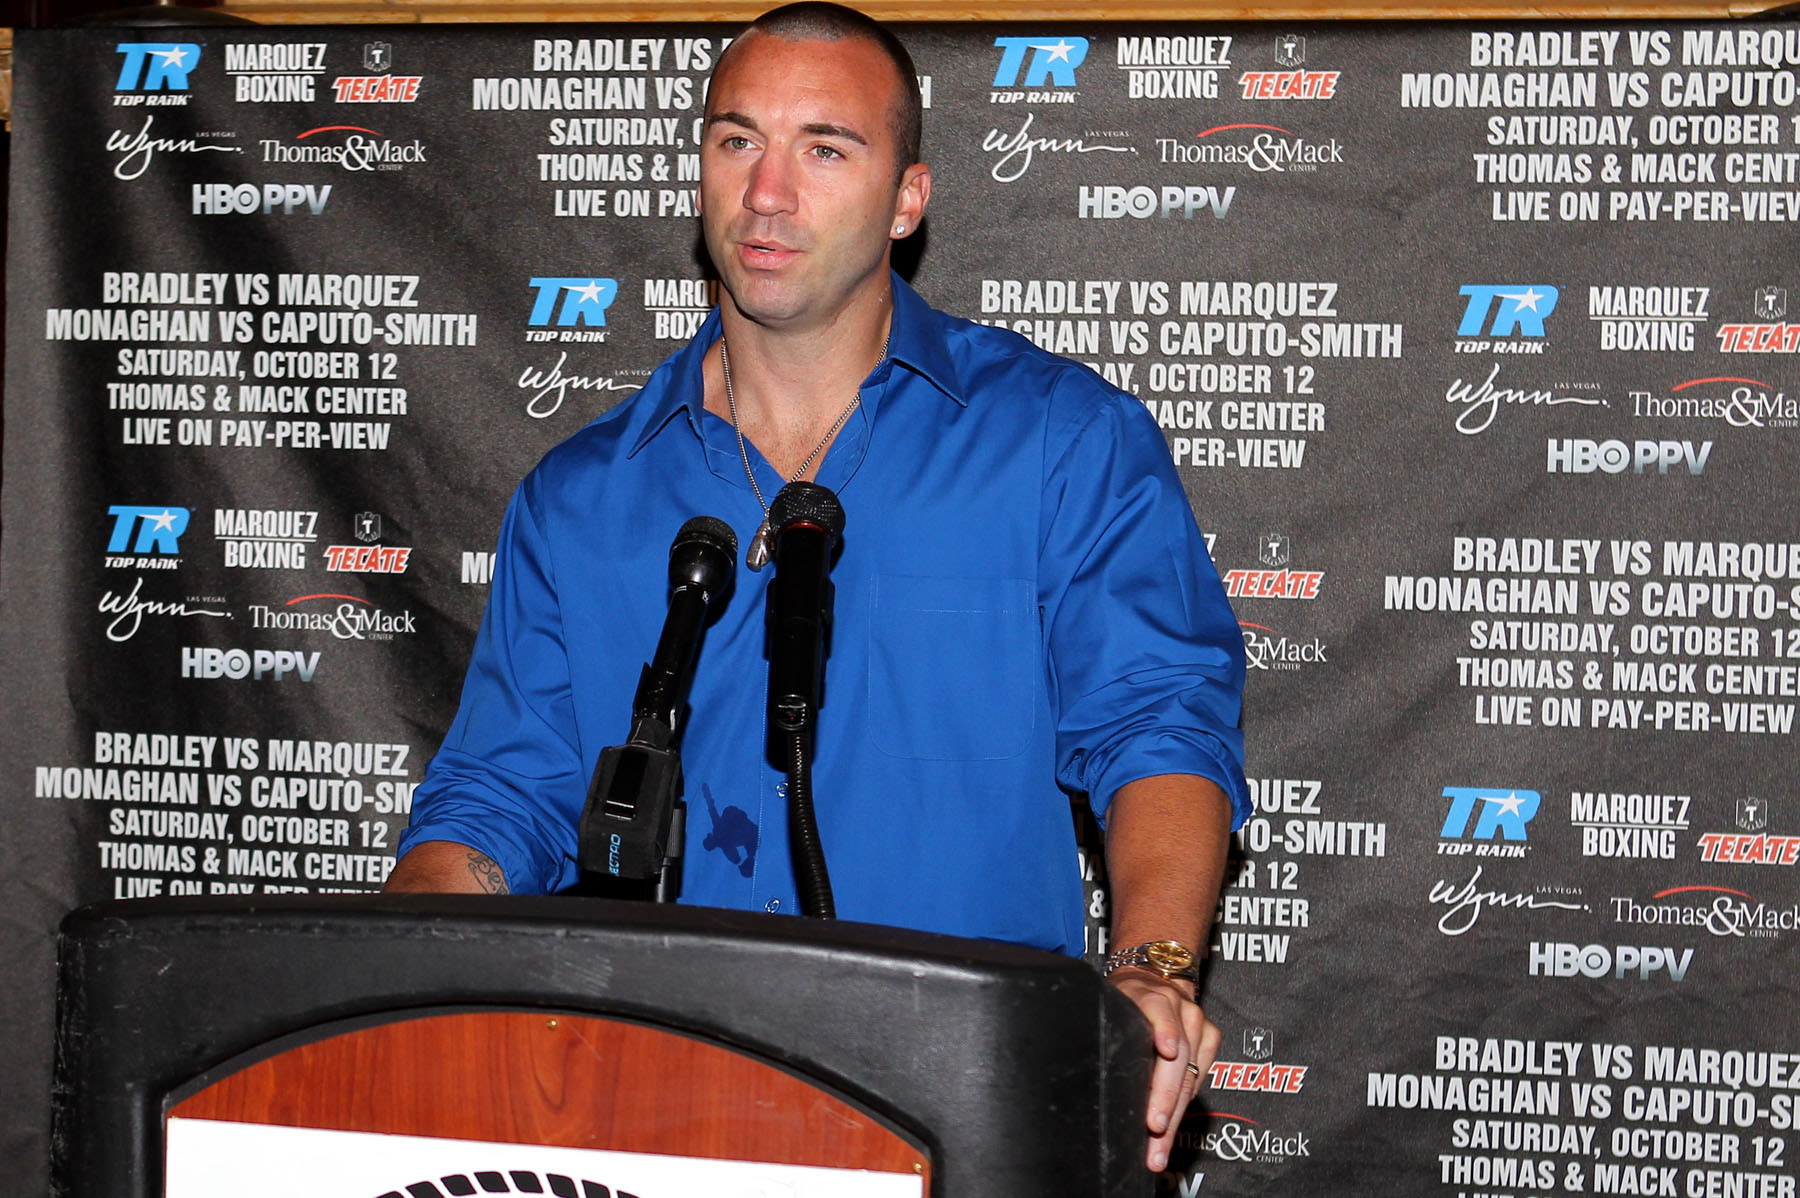 Monaghan said that Top Rank, Inc. is promoting his first fight in Las Vegas.